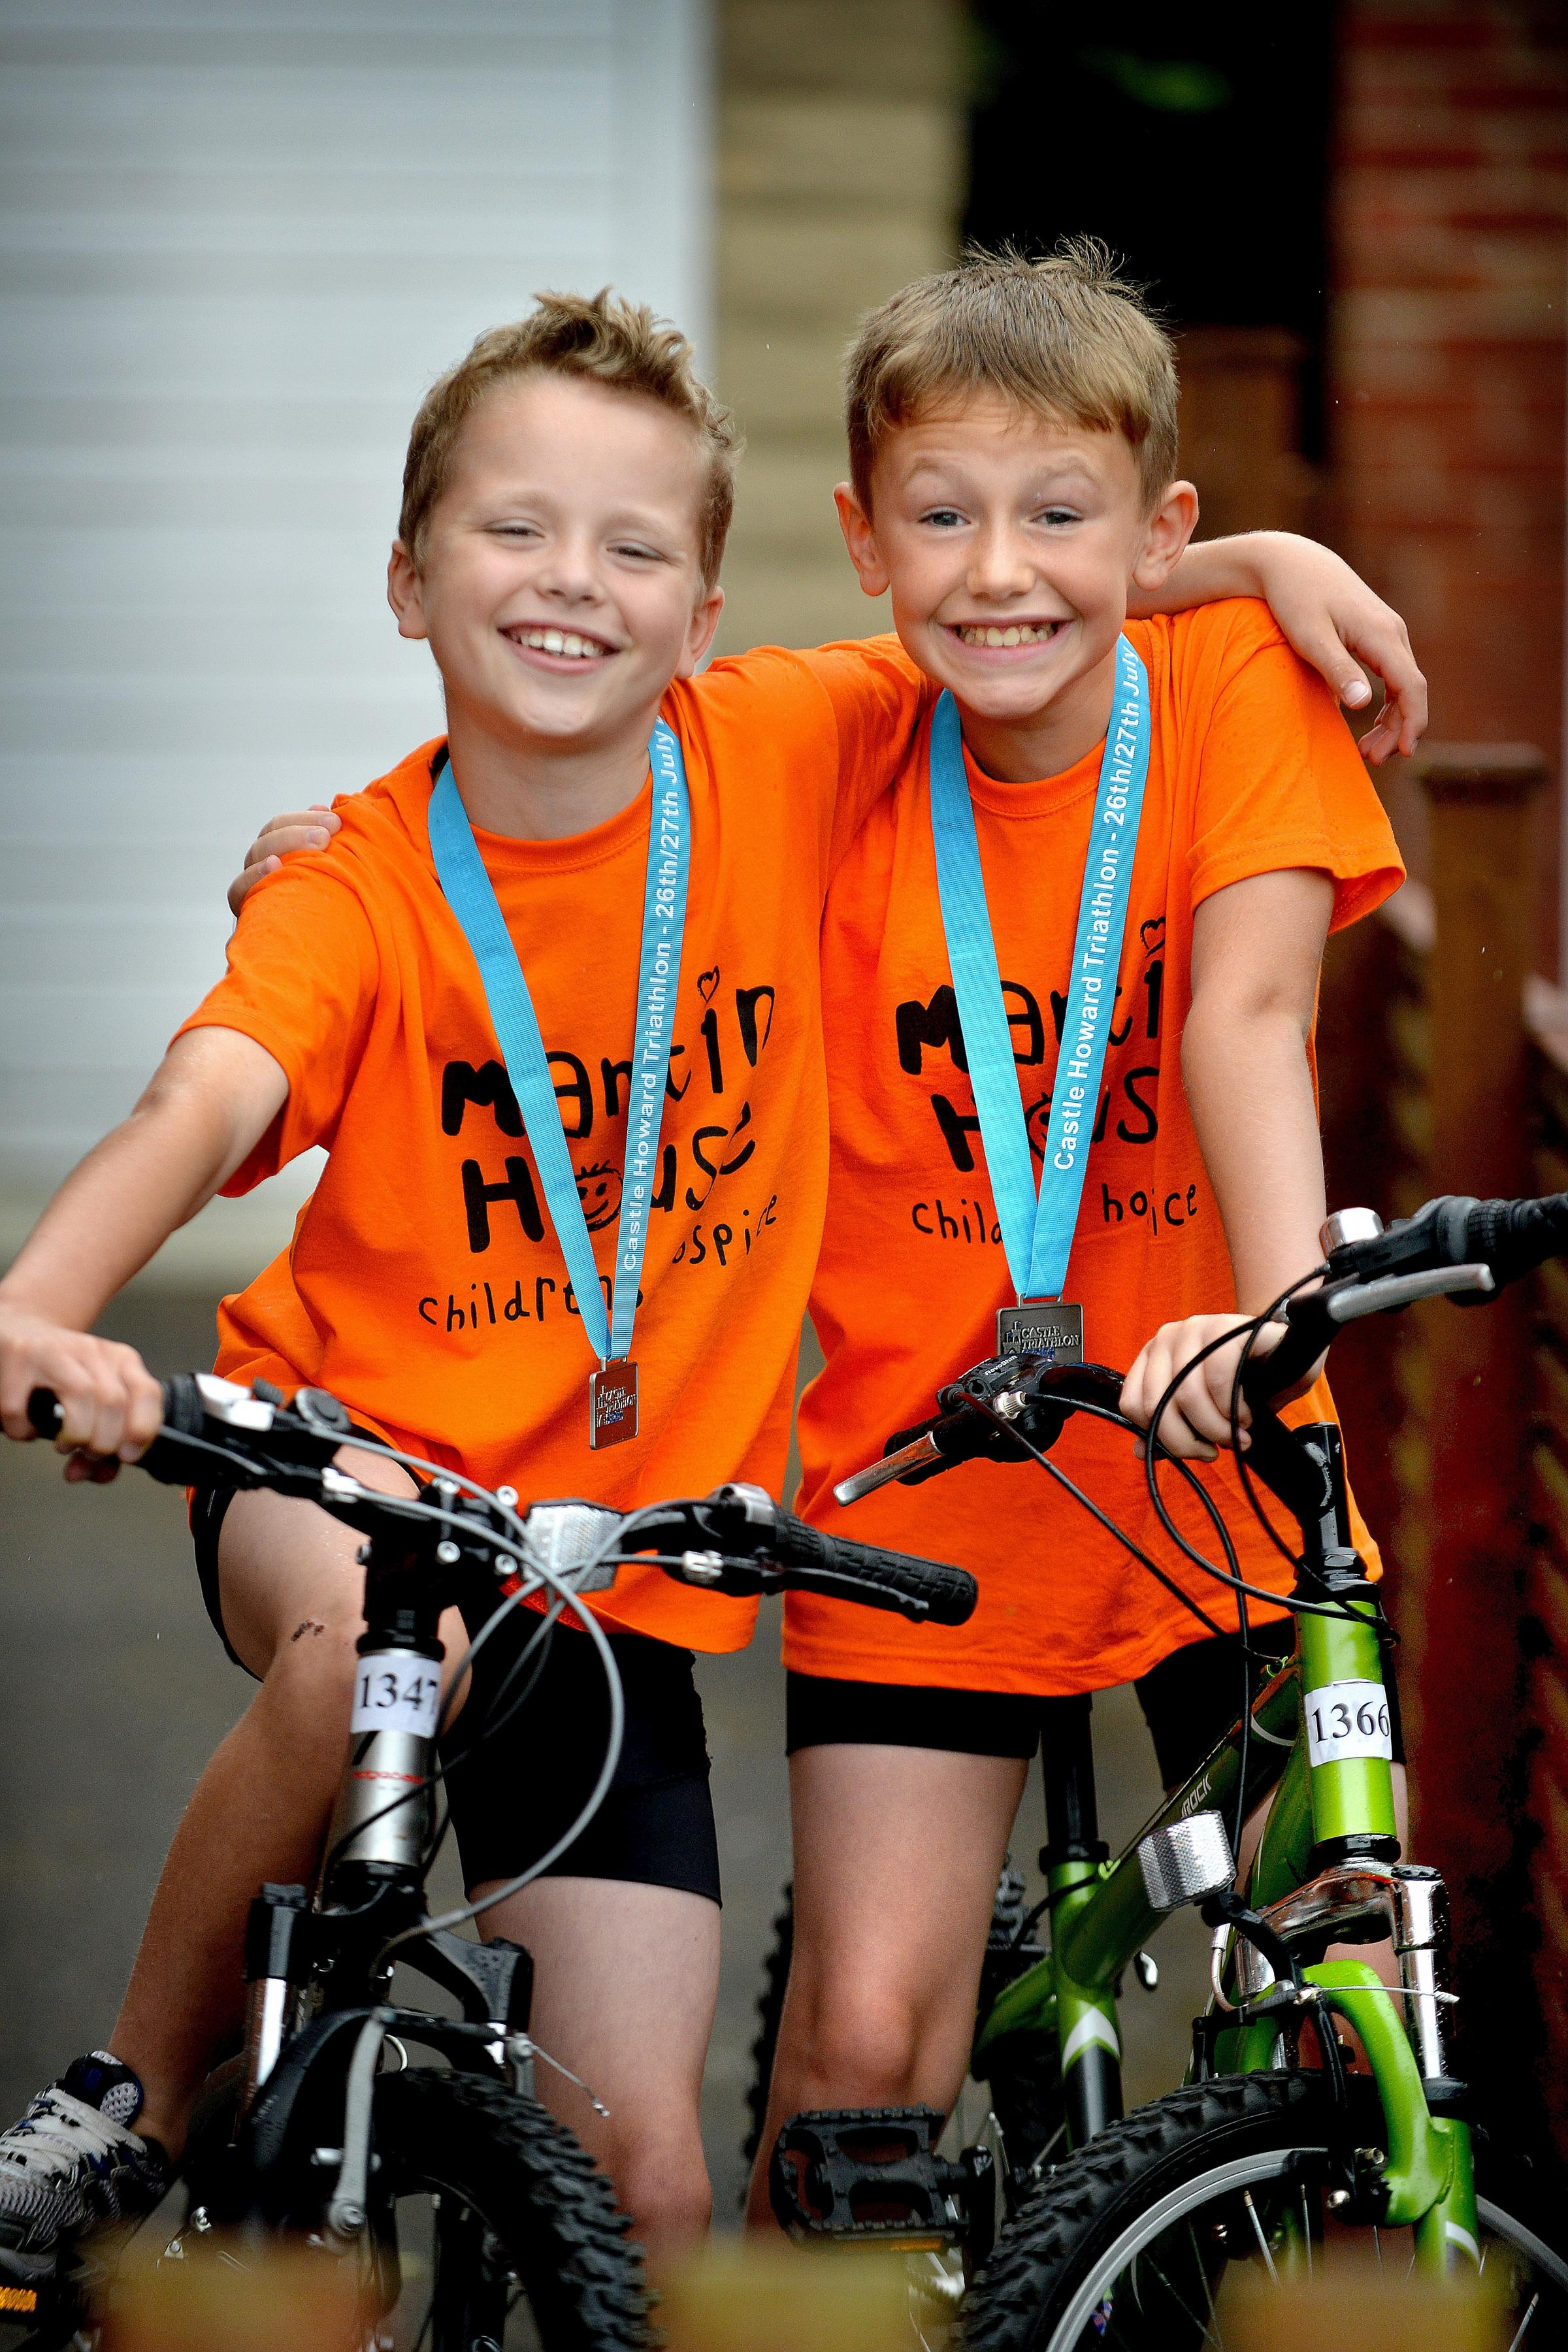 VIDEO: Sport-mad lads, 10, take on triathlon for hospice